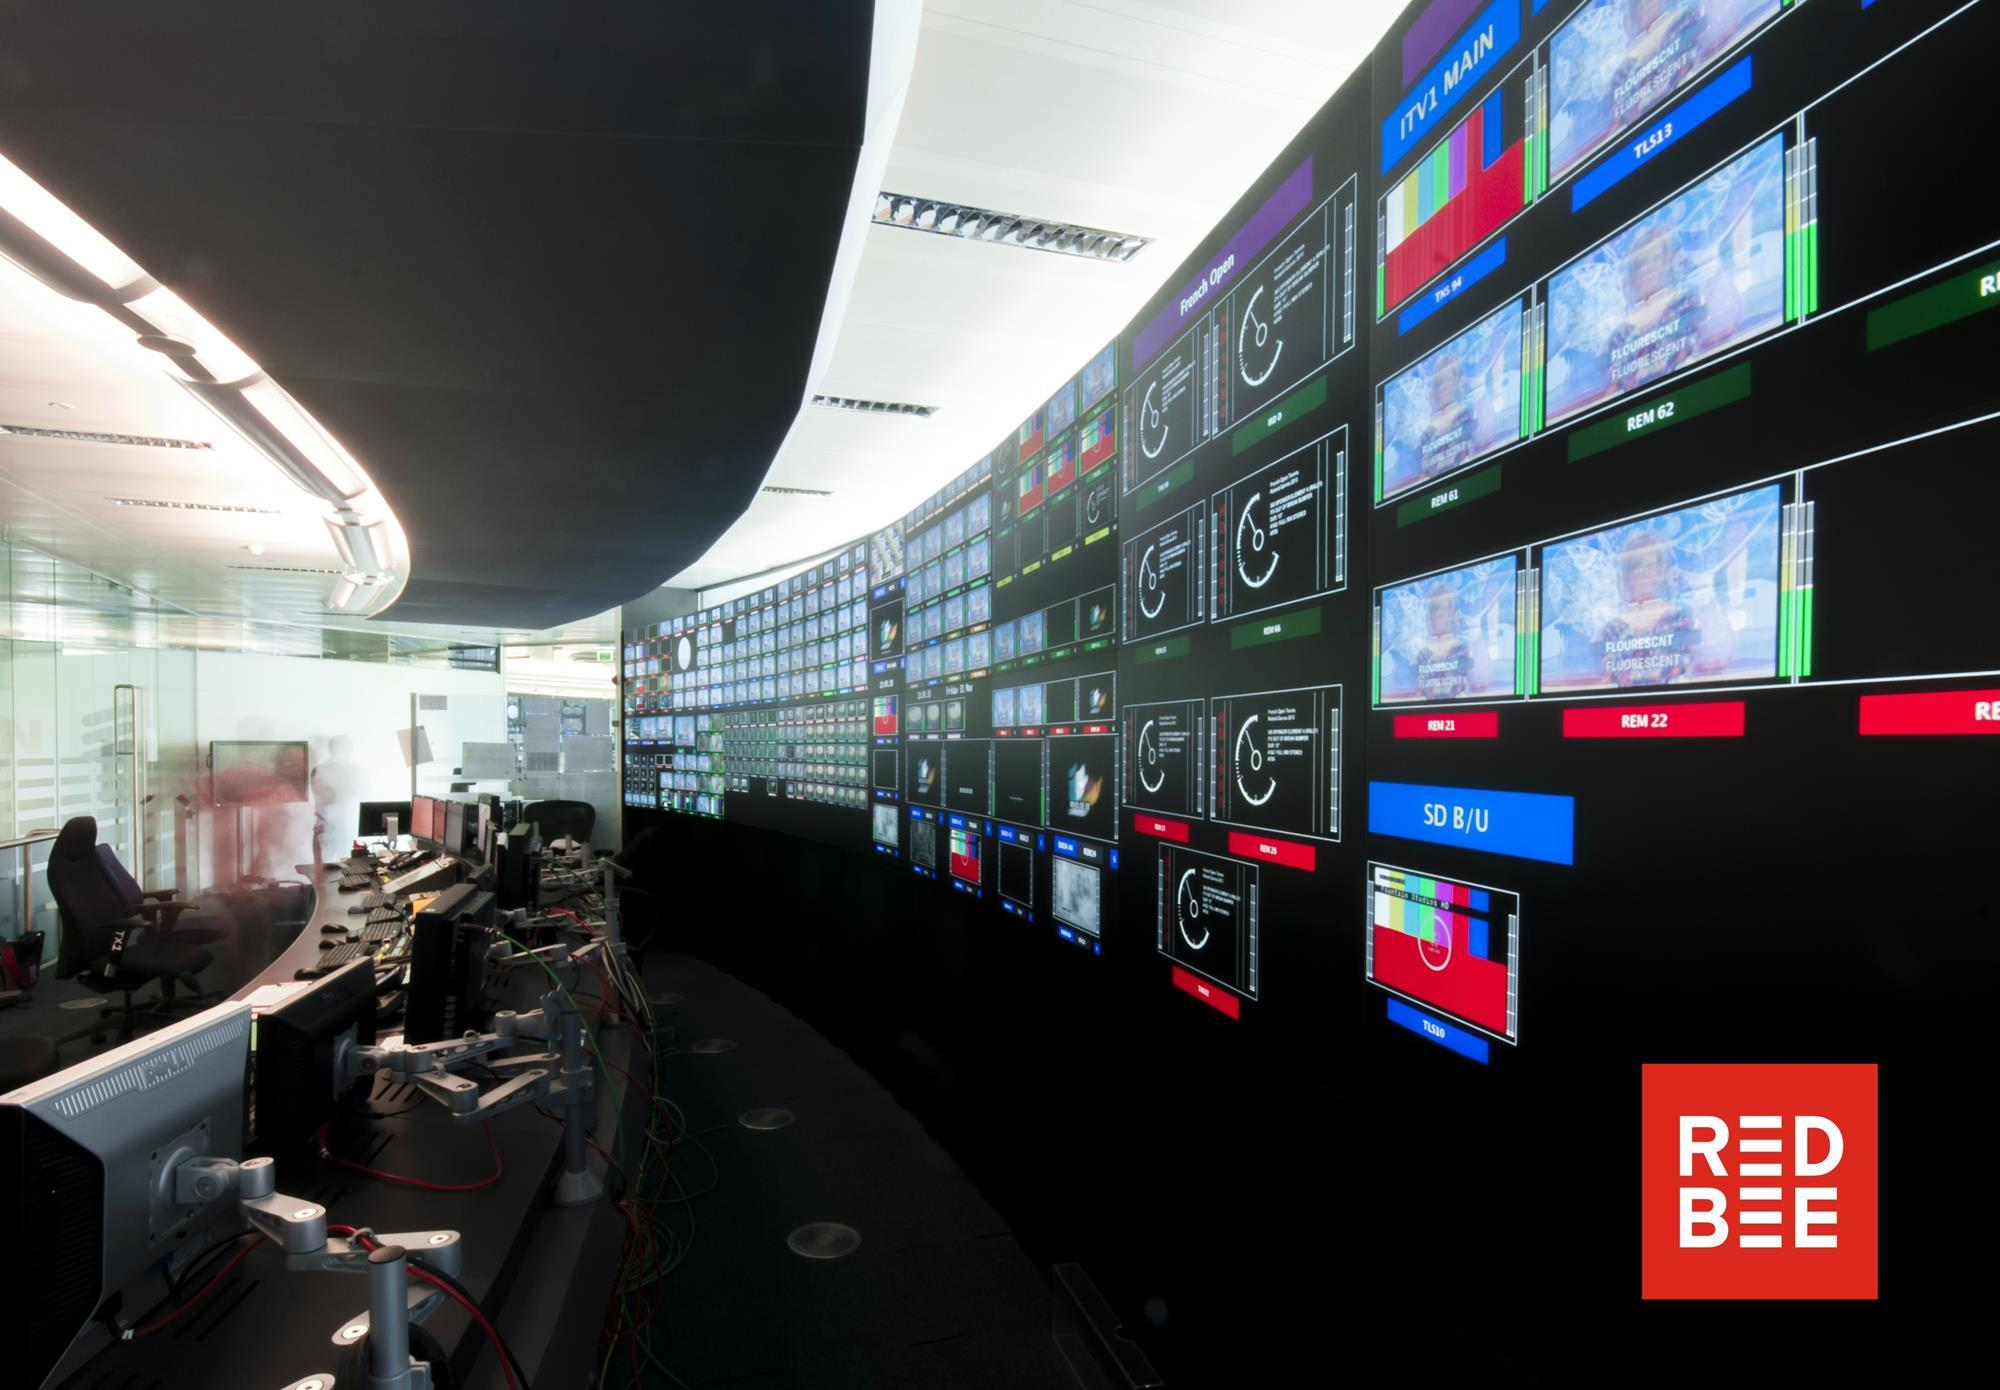 From post to playout: Advances in the cloud | Industry Trends | IBC